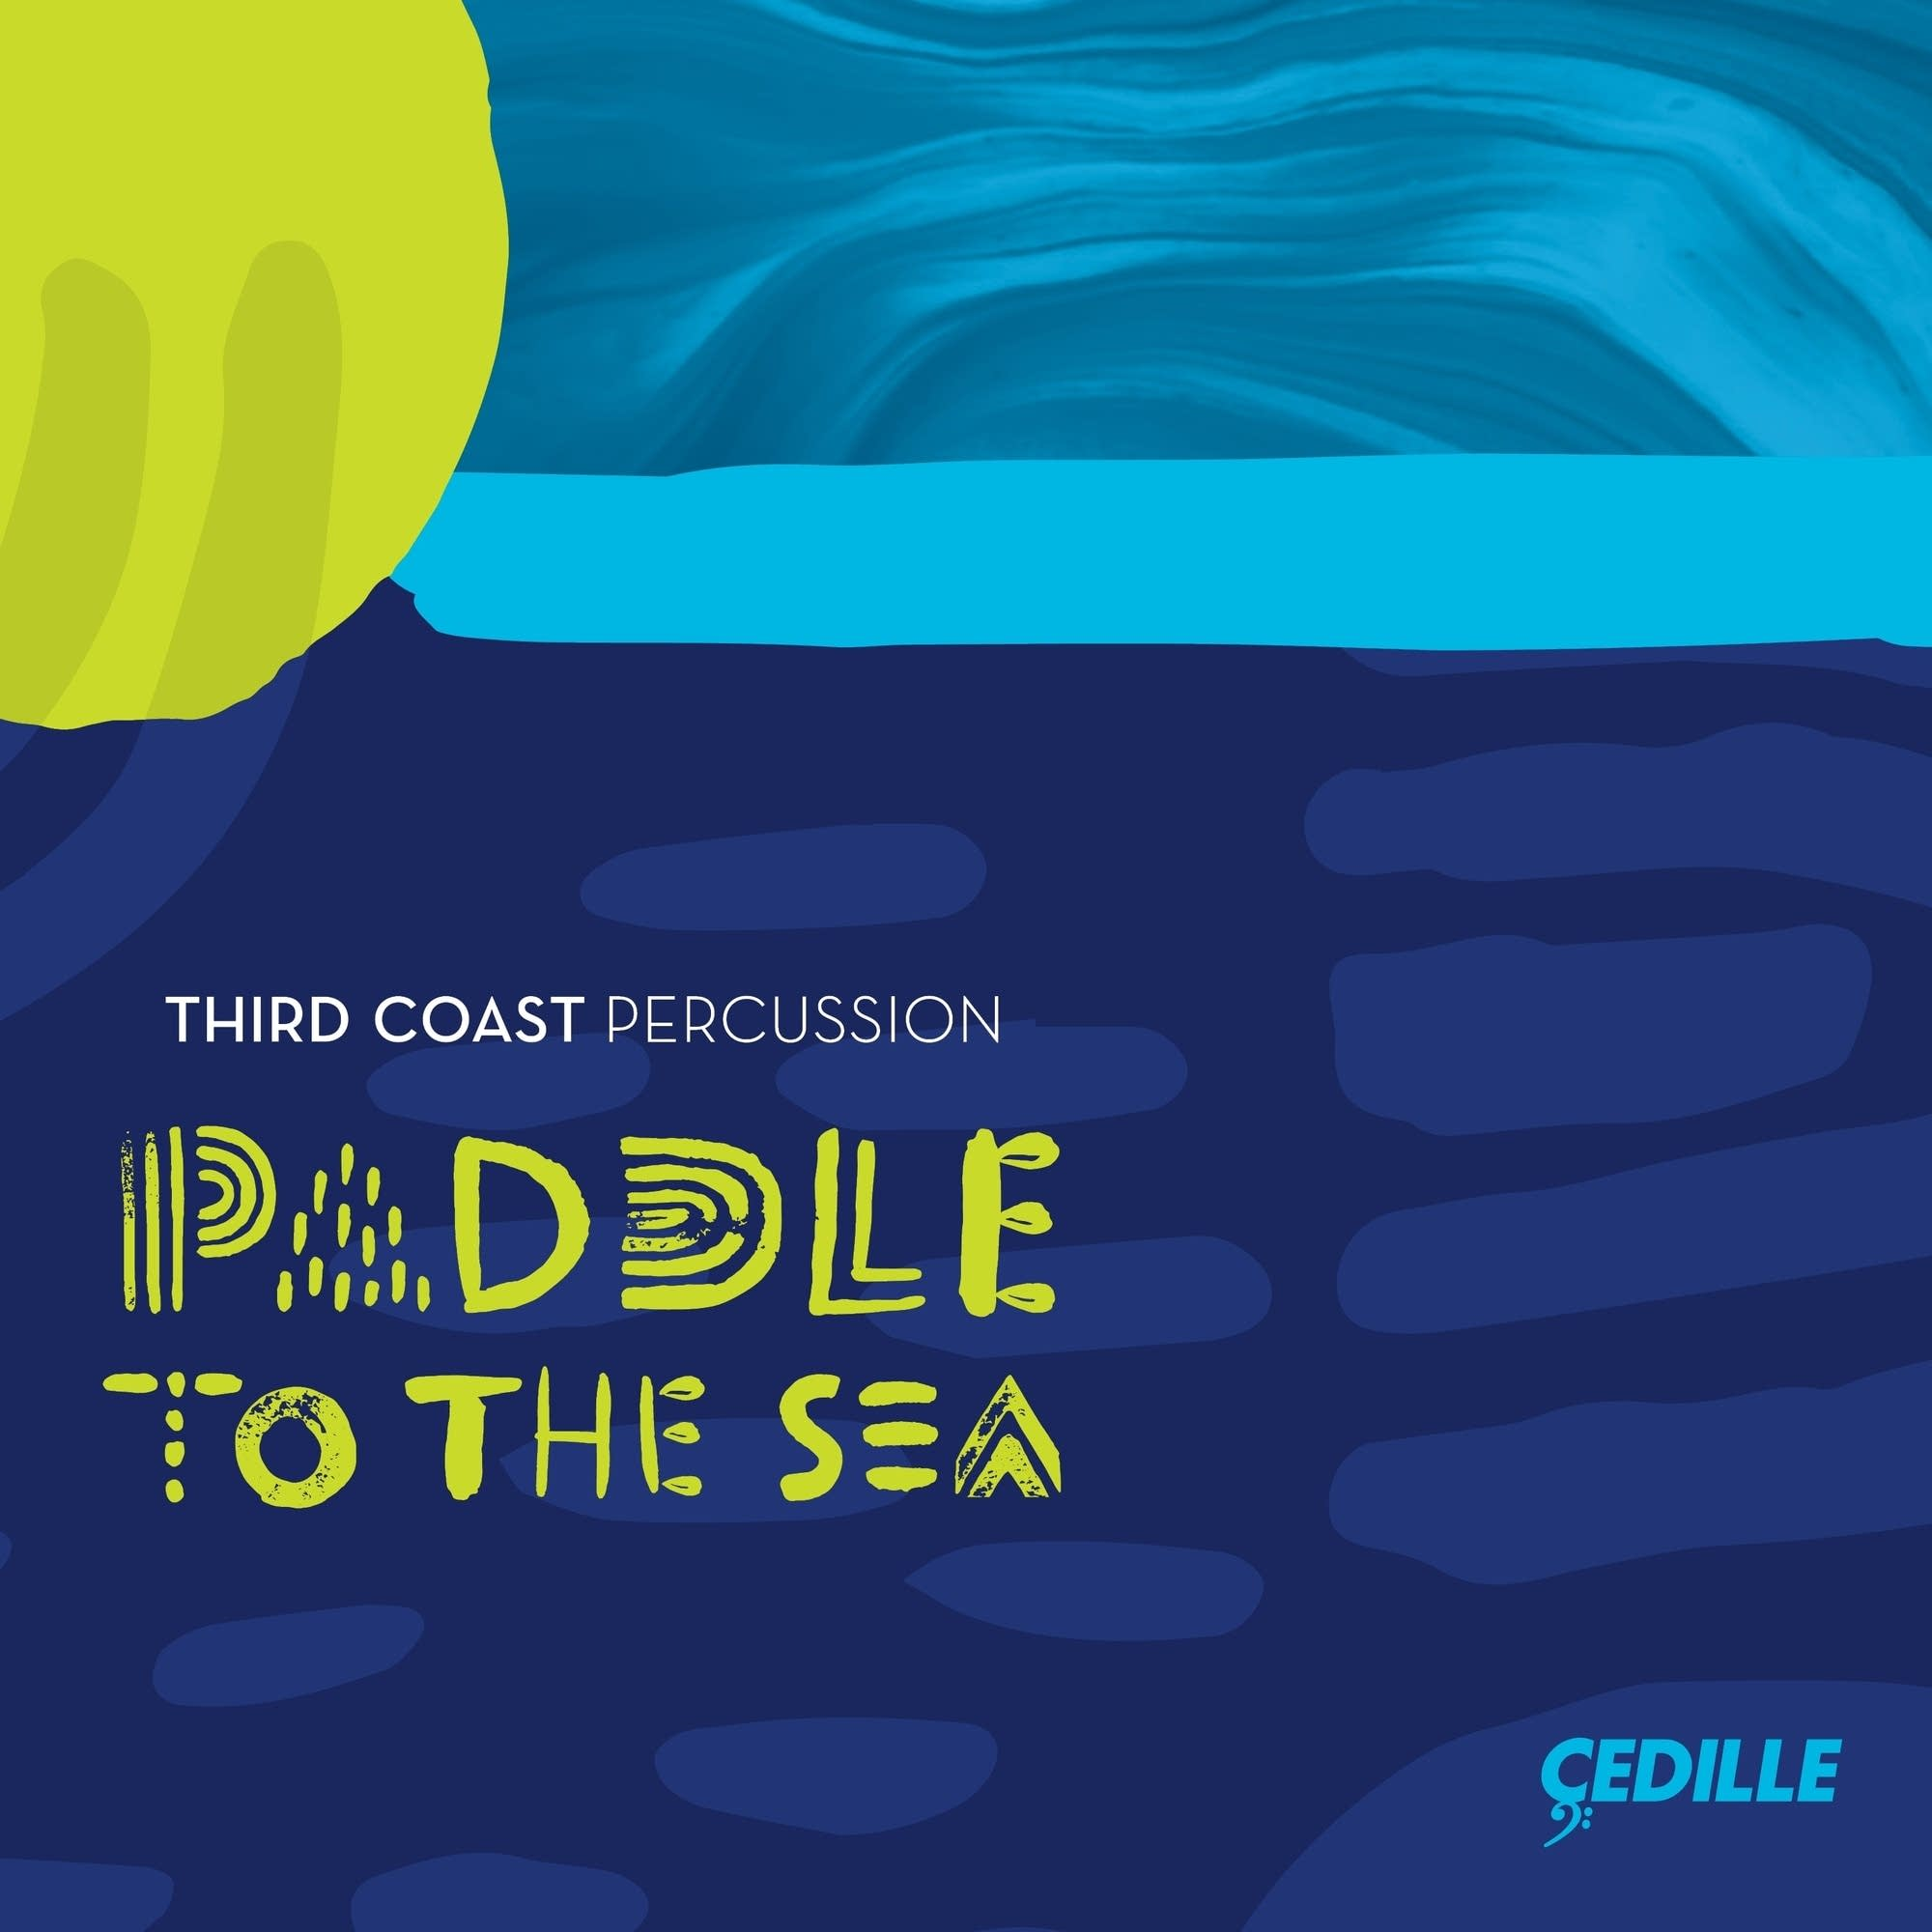 Third Coast Percussion: 'Paddle to the Sea'